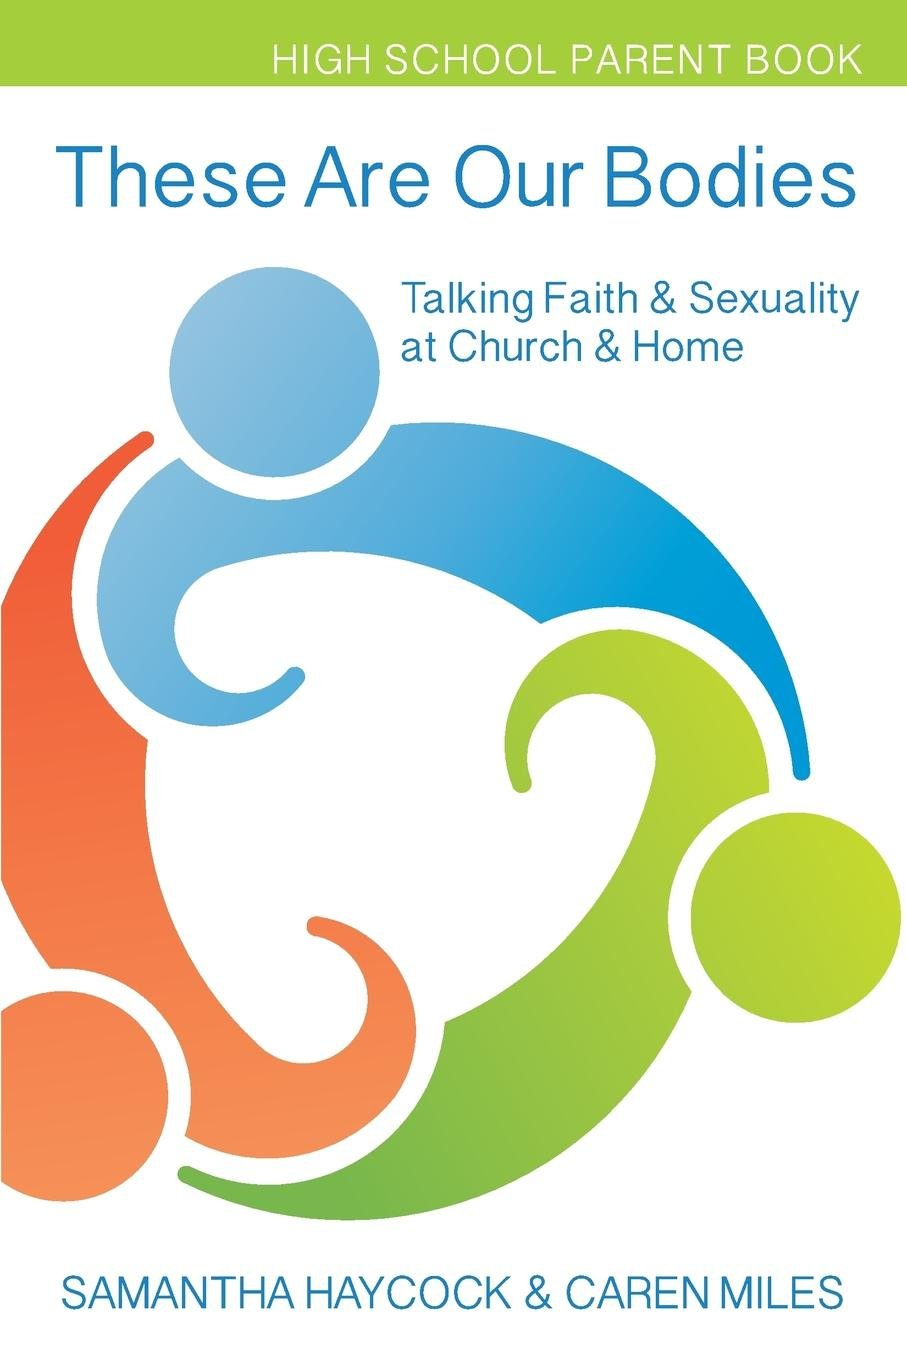 Download These Are Our Bodies, High School Parent Book: Talking Faith & Sexuality at Church & Home (High School Parent Book) pdf epub